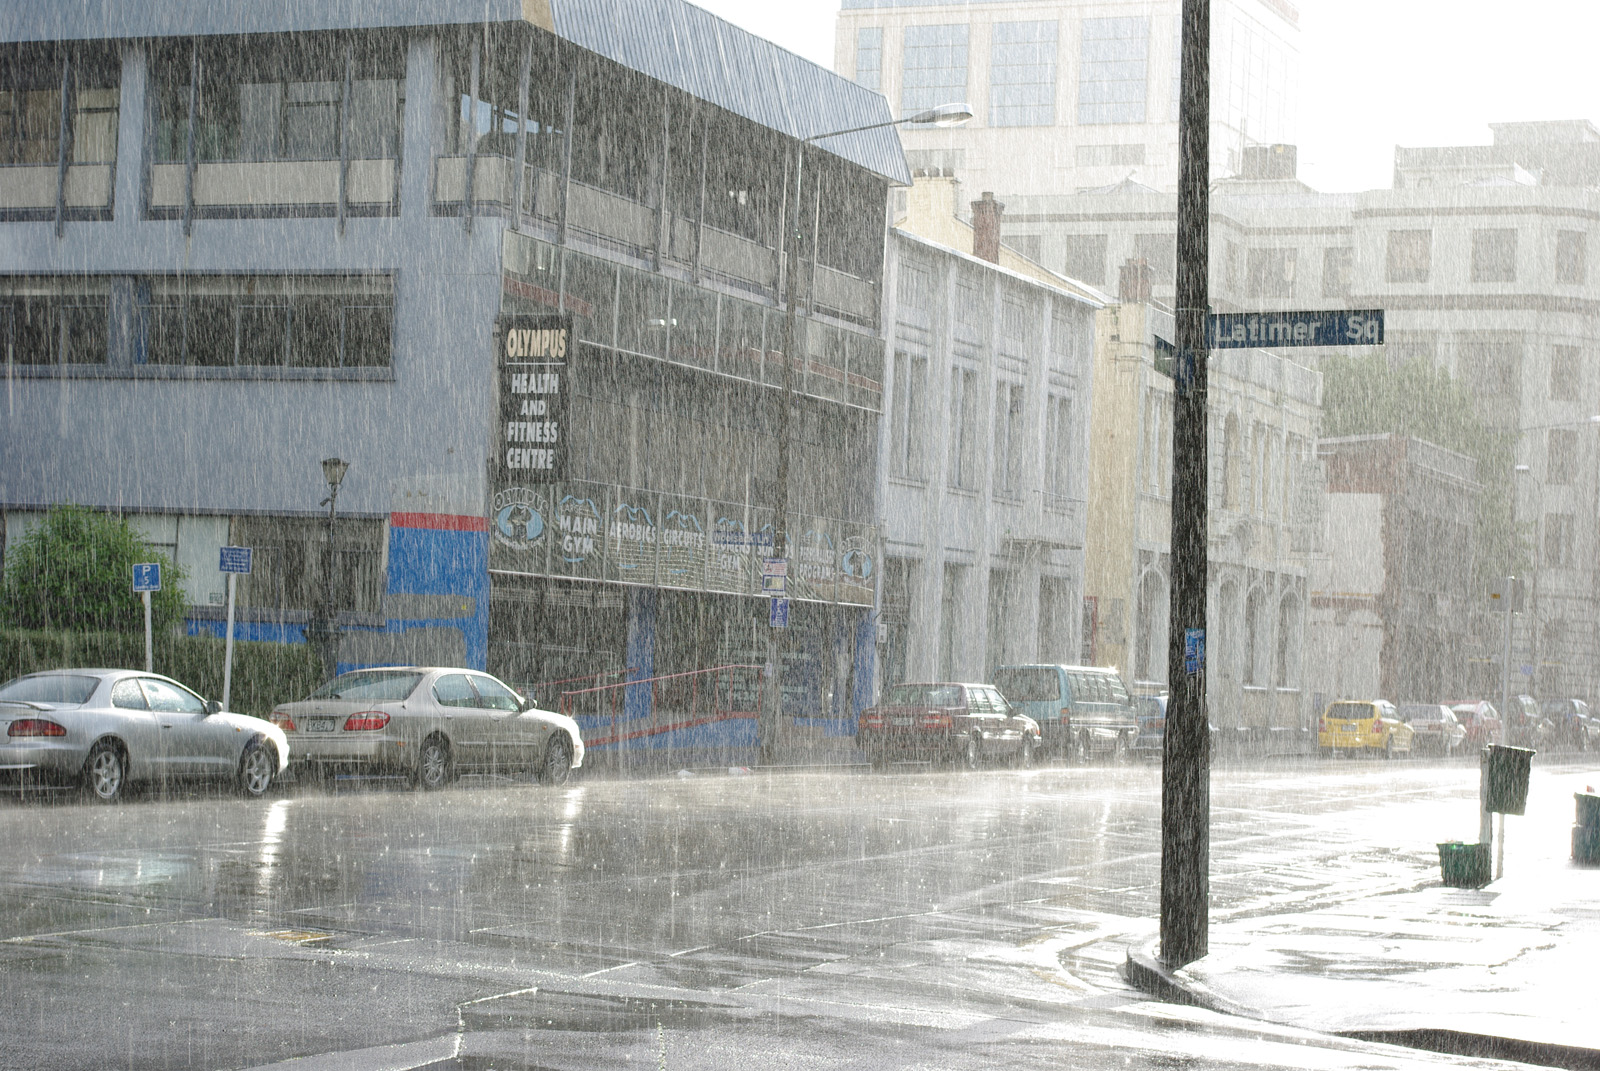 Rainy day in Christchurch